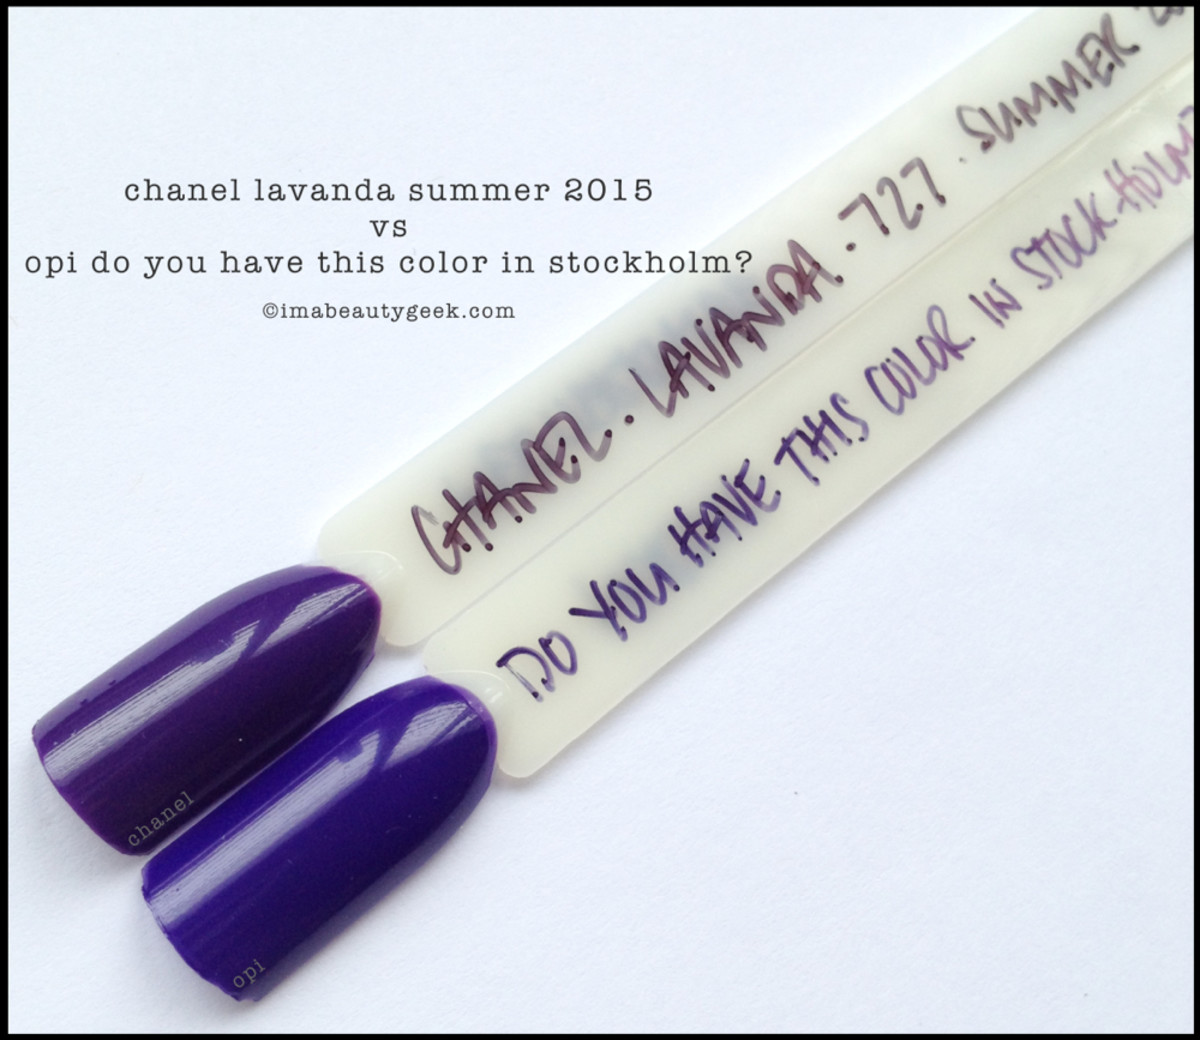 Chanel Lavanda Comparison Swatch vs OPI